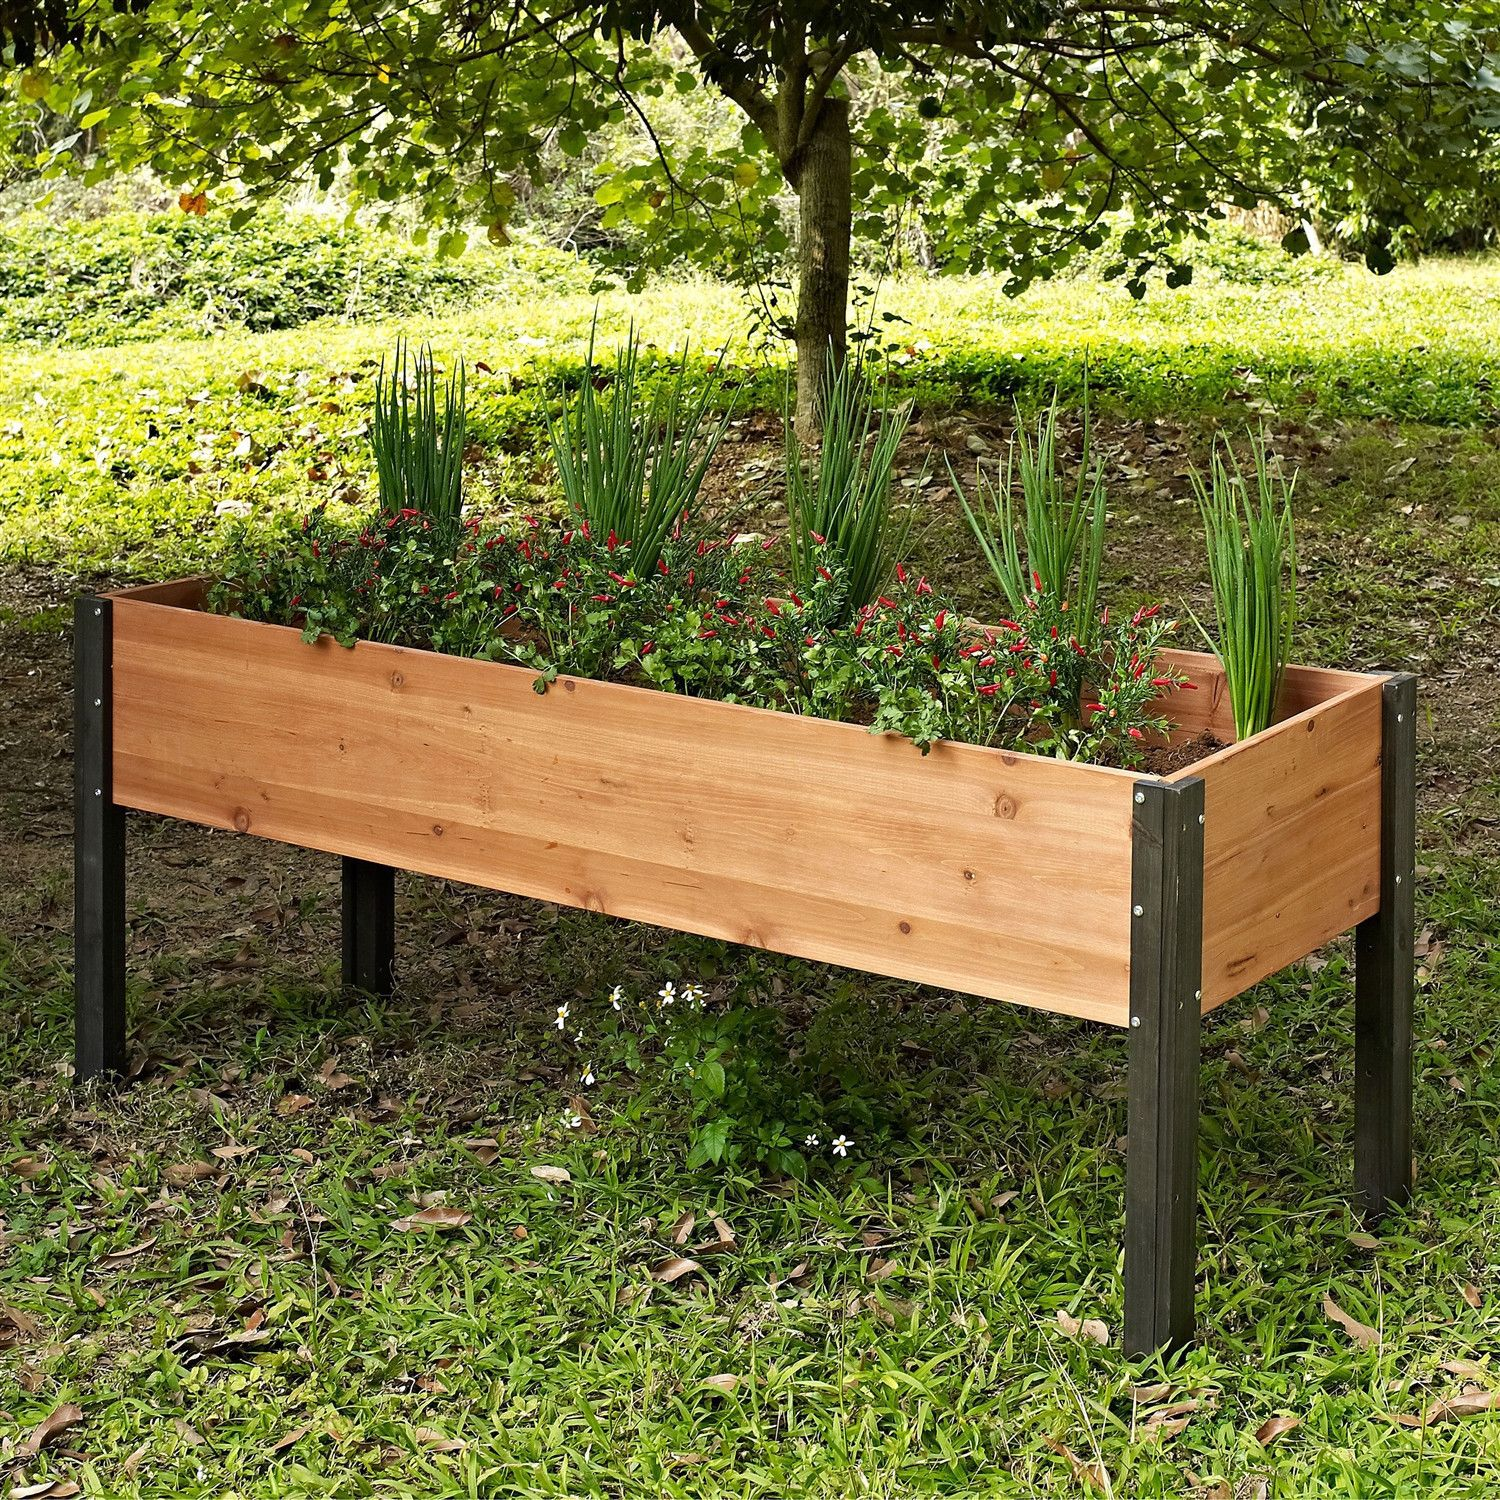 Elevated Outdoor Raised Garden Bed Planter Box   70 X 24 X 29 Inch High  TODAY